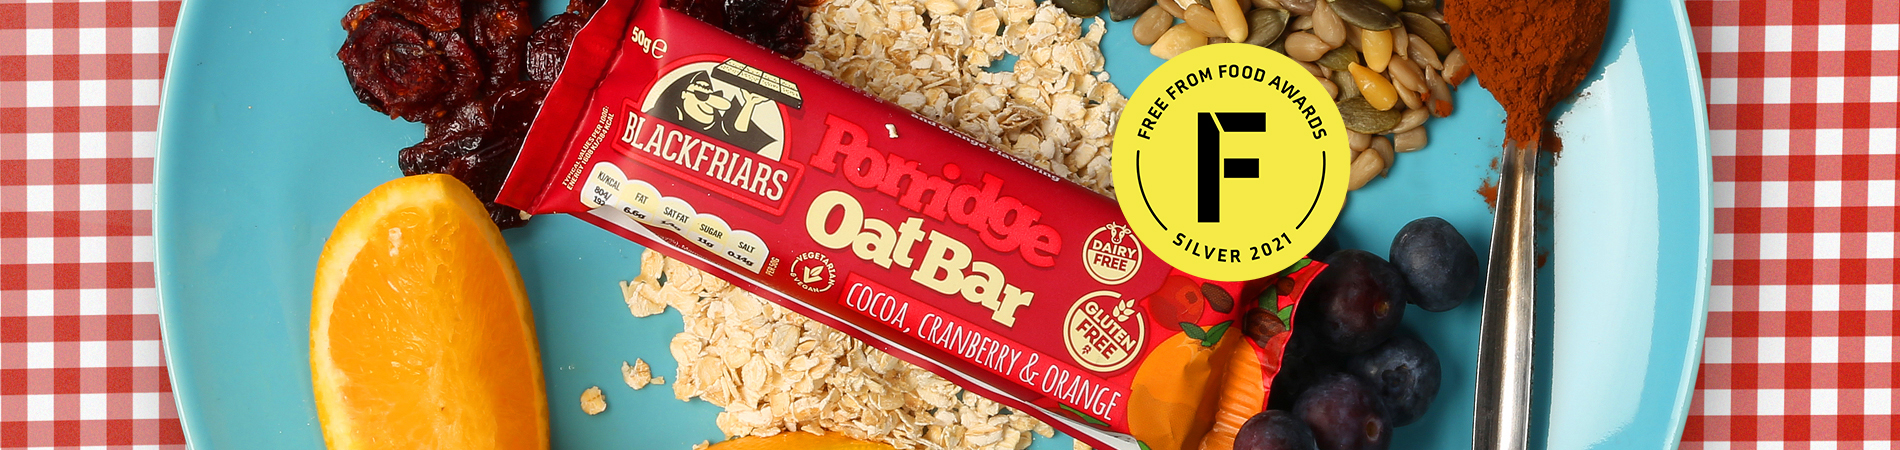 Porridge Oat Bars